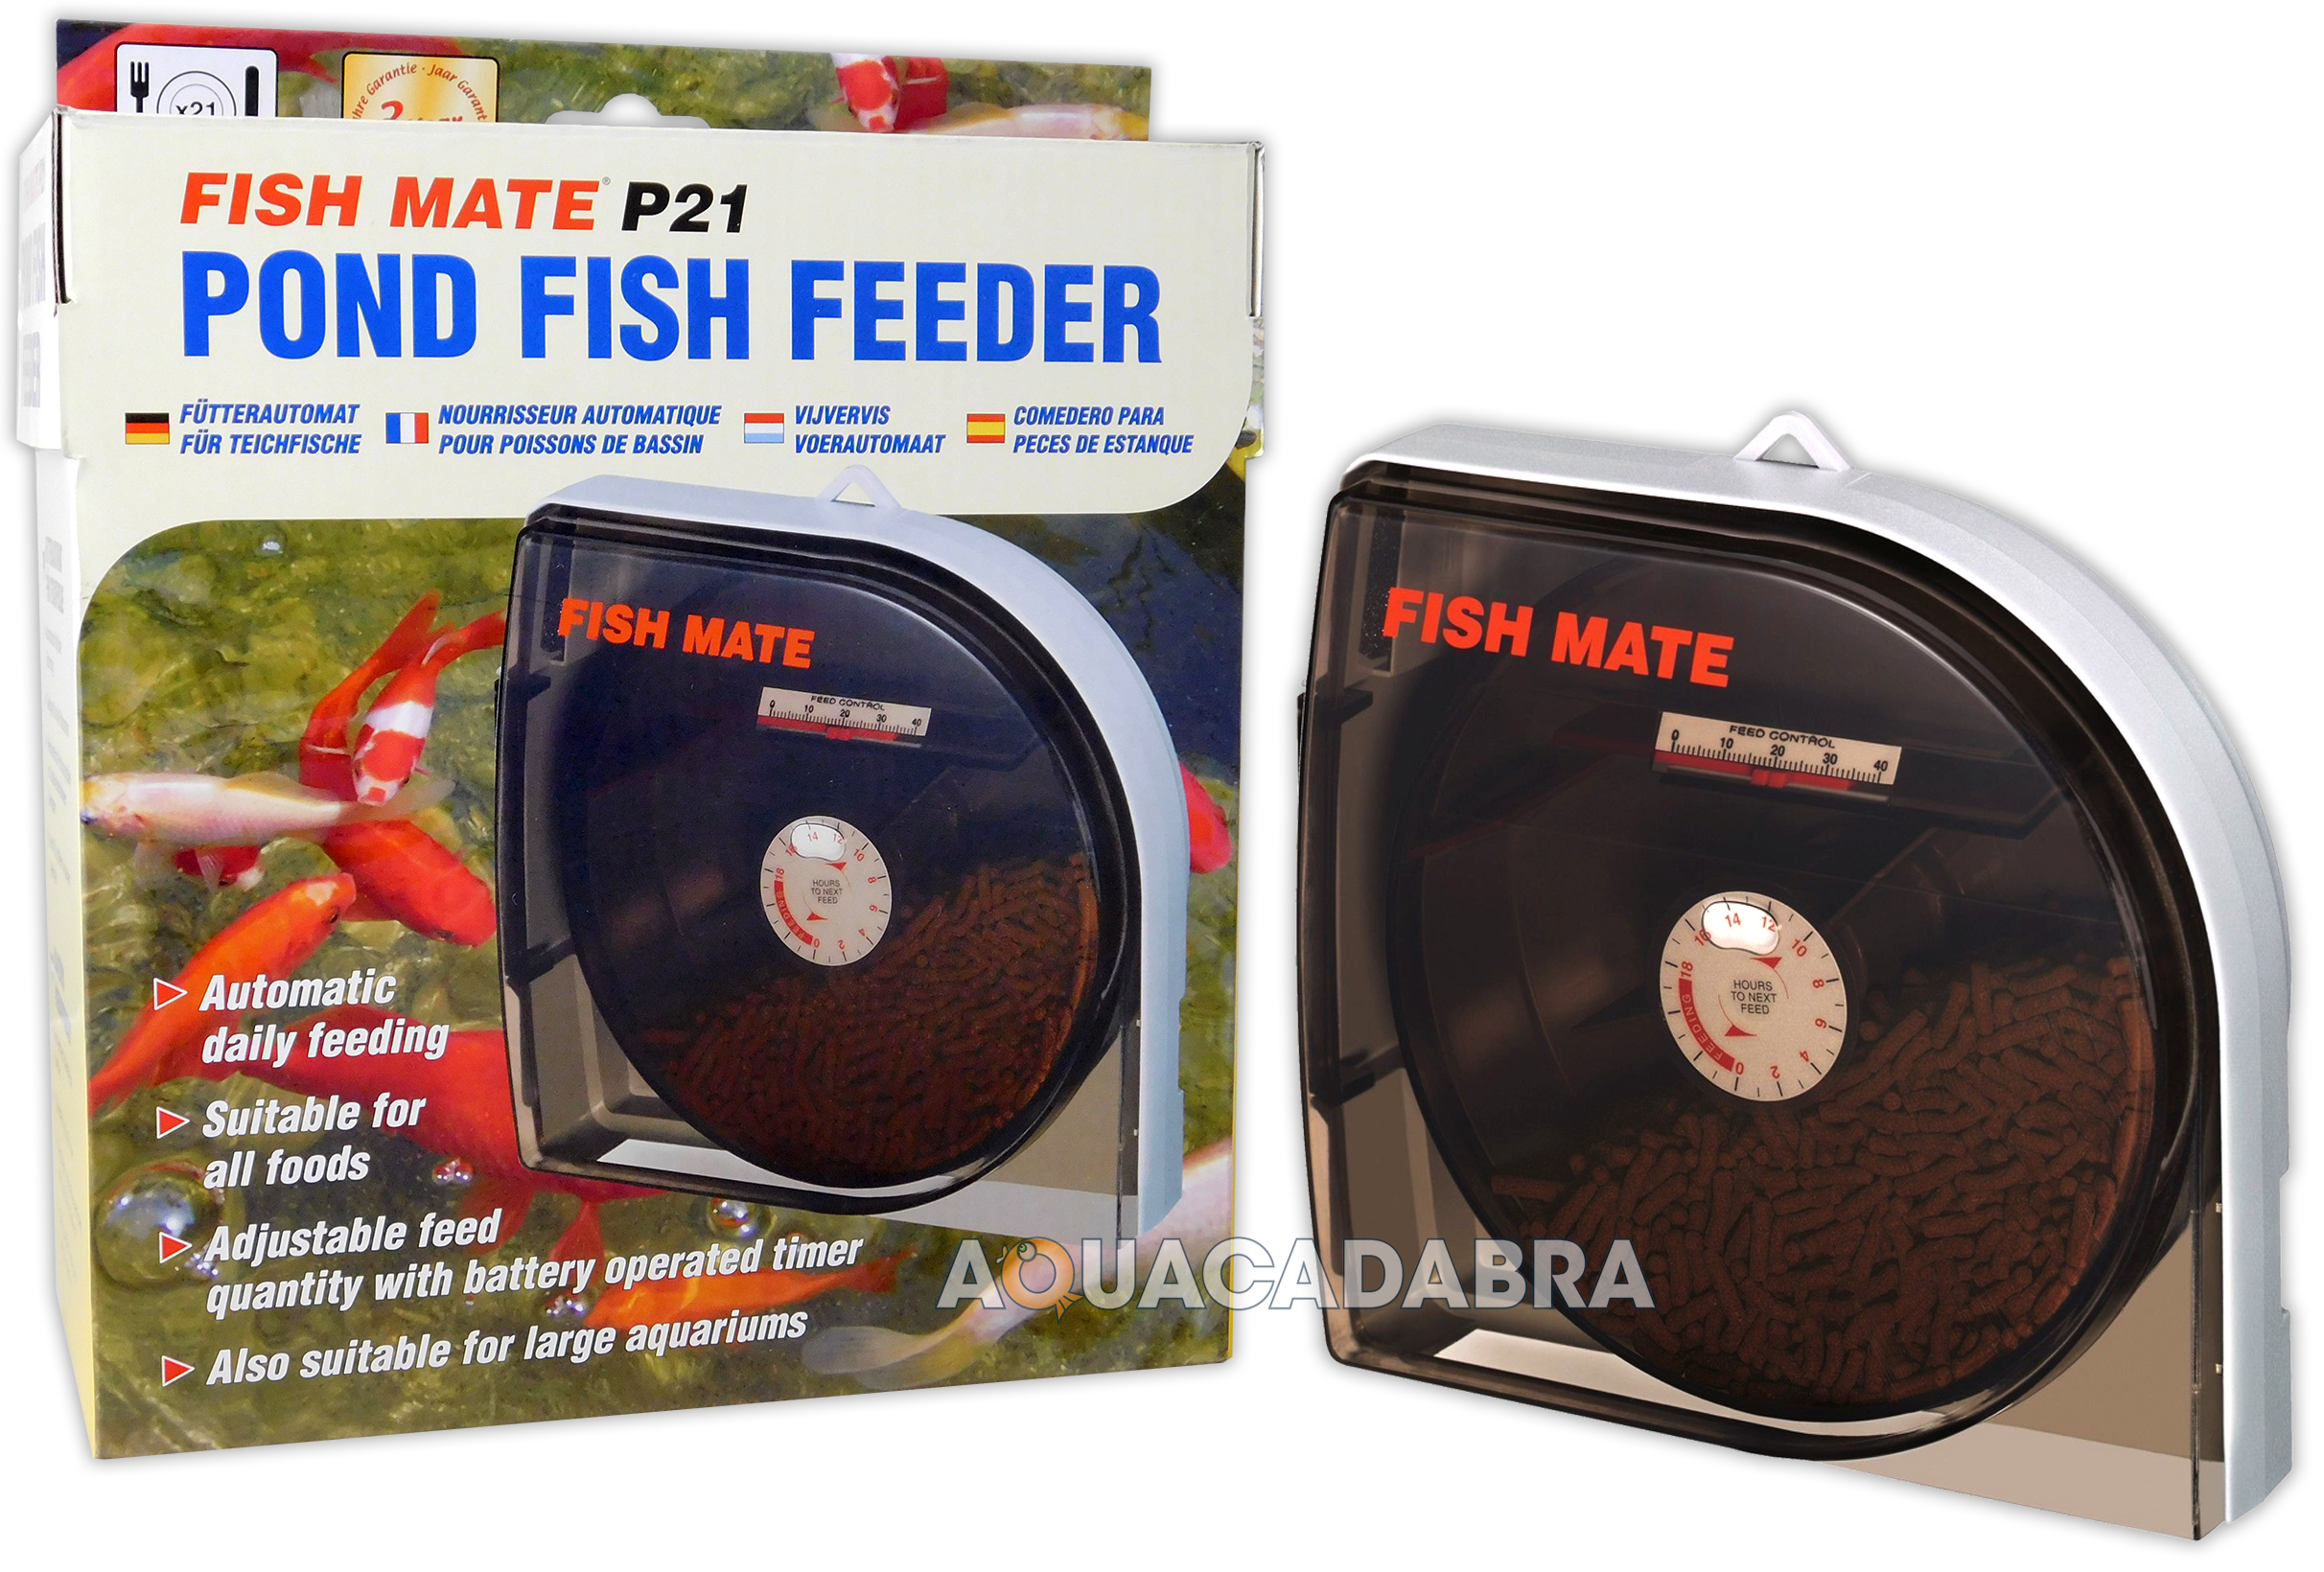 h for plastic x bowl vase gallon food aquarium ip walmart break hawkeye com resistant feeder diameter fish automatic